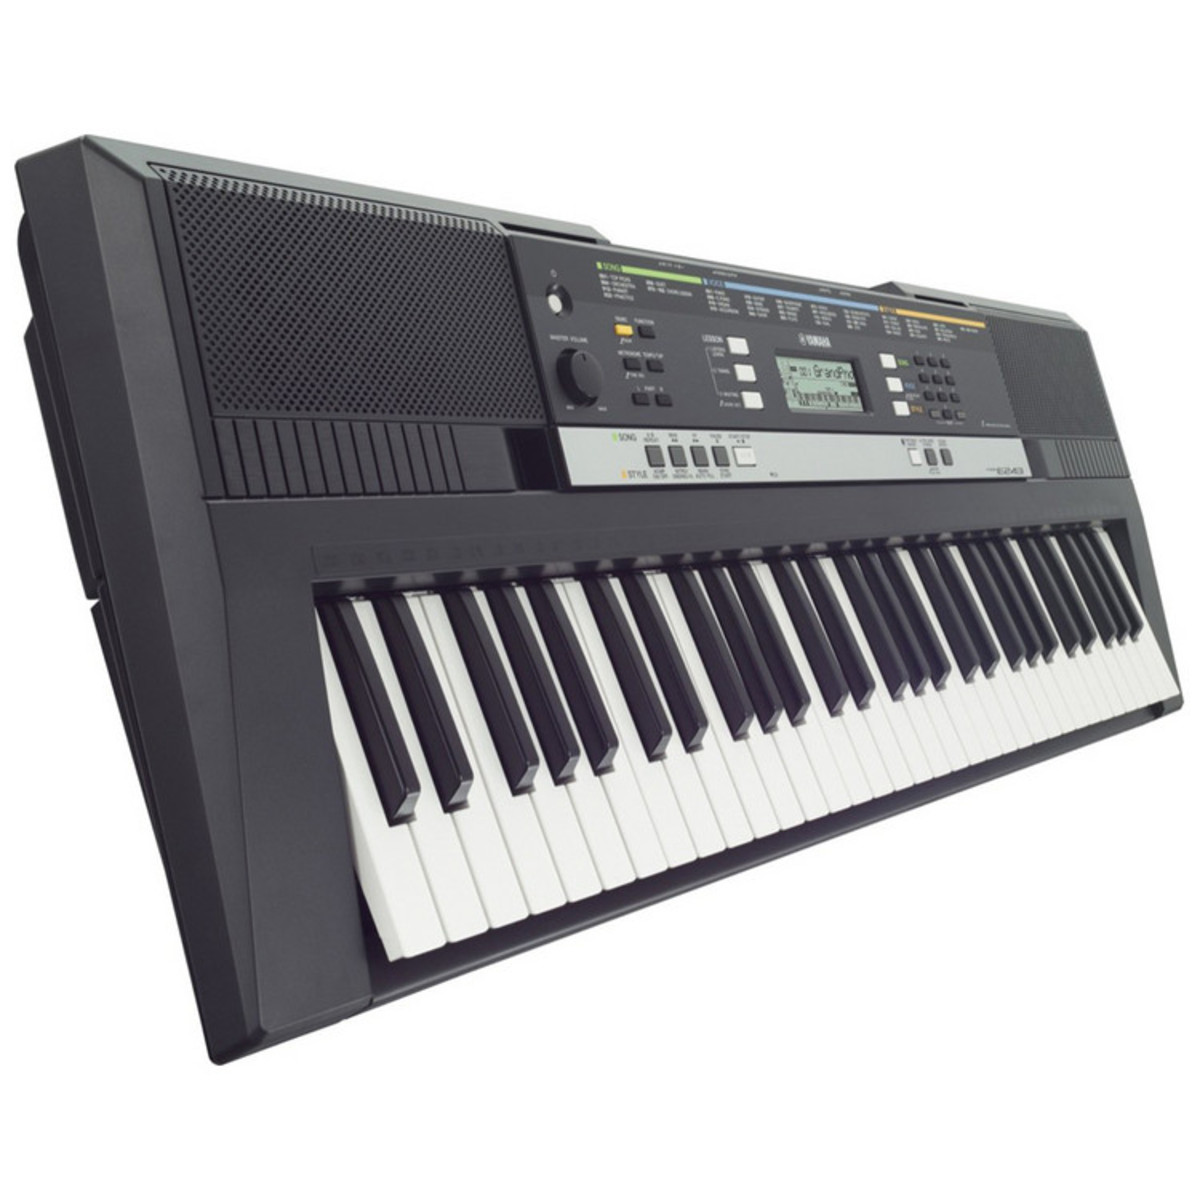 DISC Yamaha PSRE243 Portable Keyboard at Gear4music.com